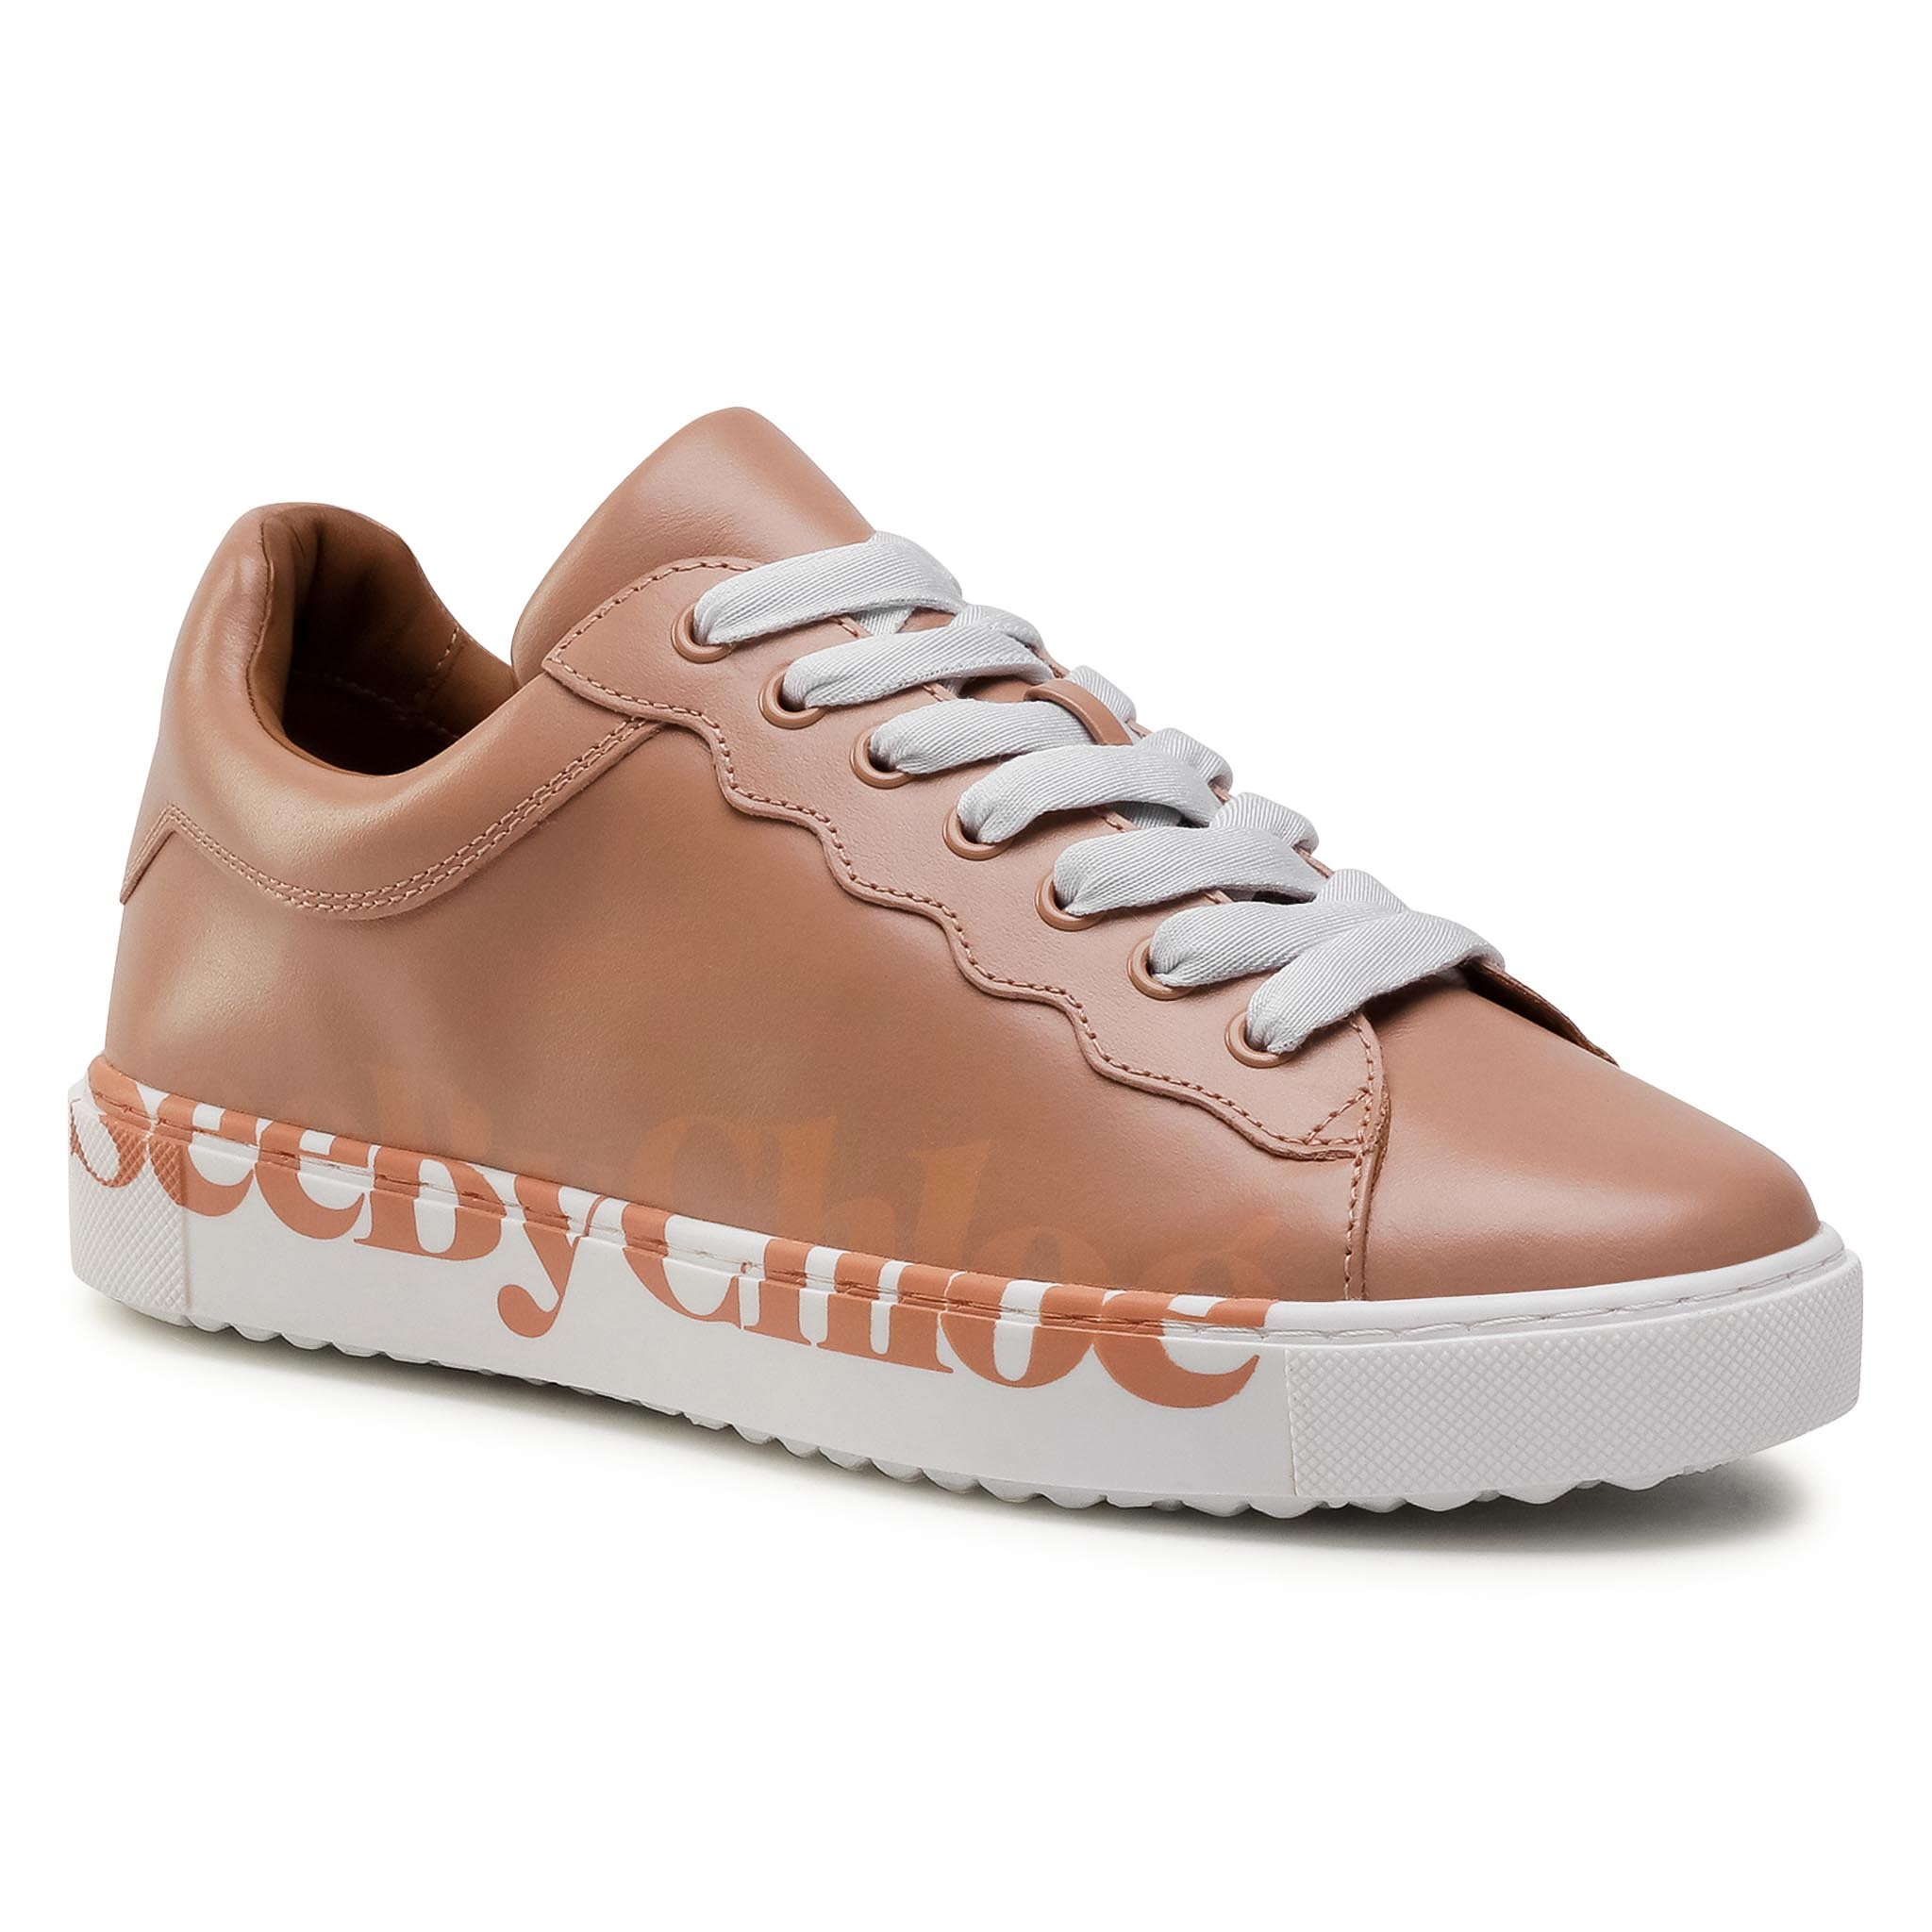 Image of Sneakers SEE BY CHLOÉ - SB33125A Light Rose 348